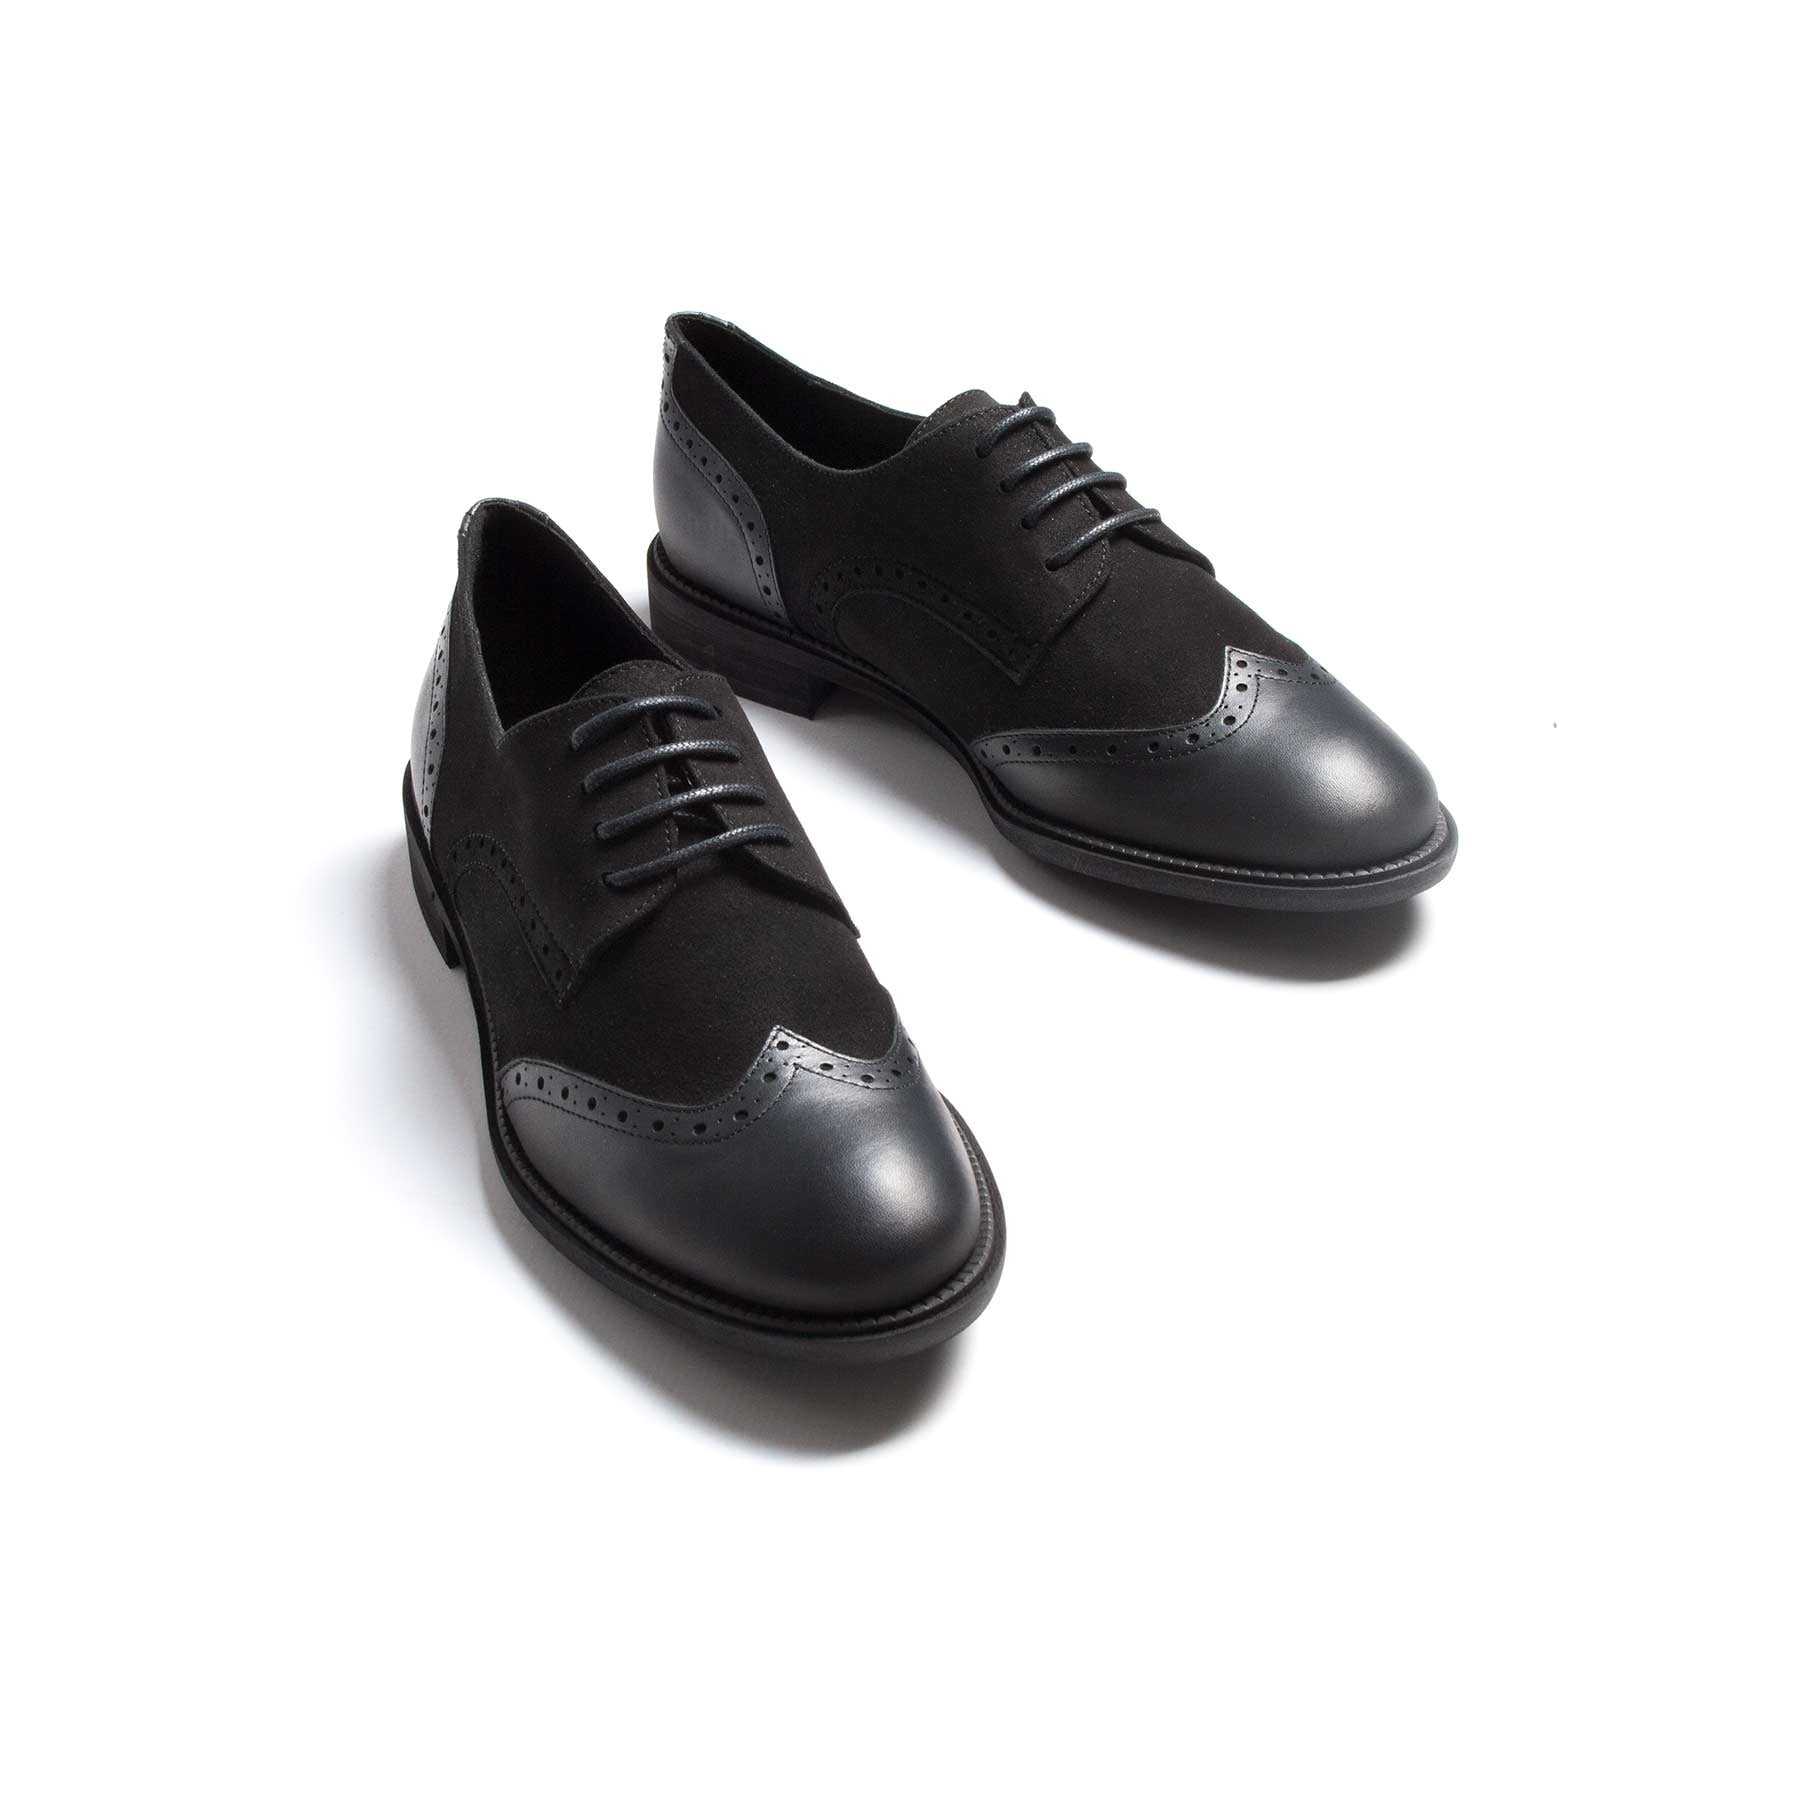 Murphy Black Leather & Suede-SOLD OUT